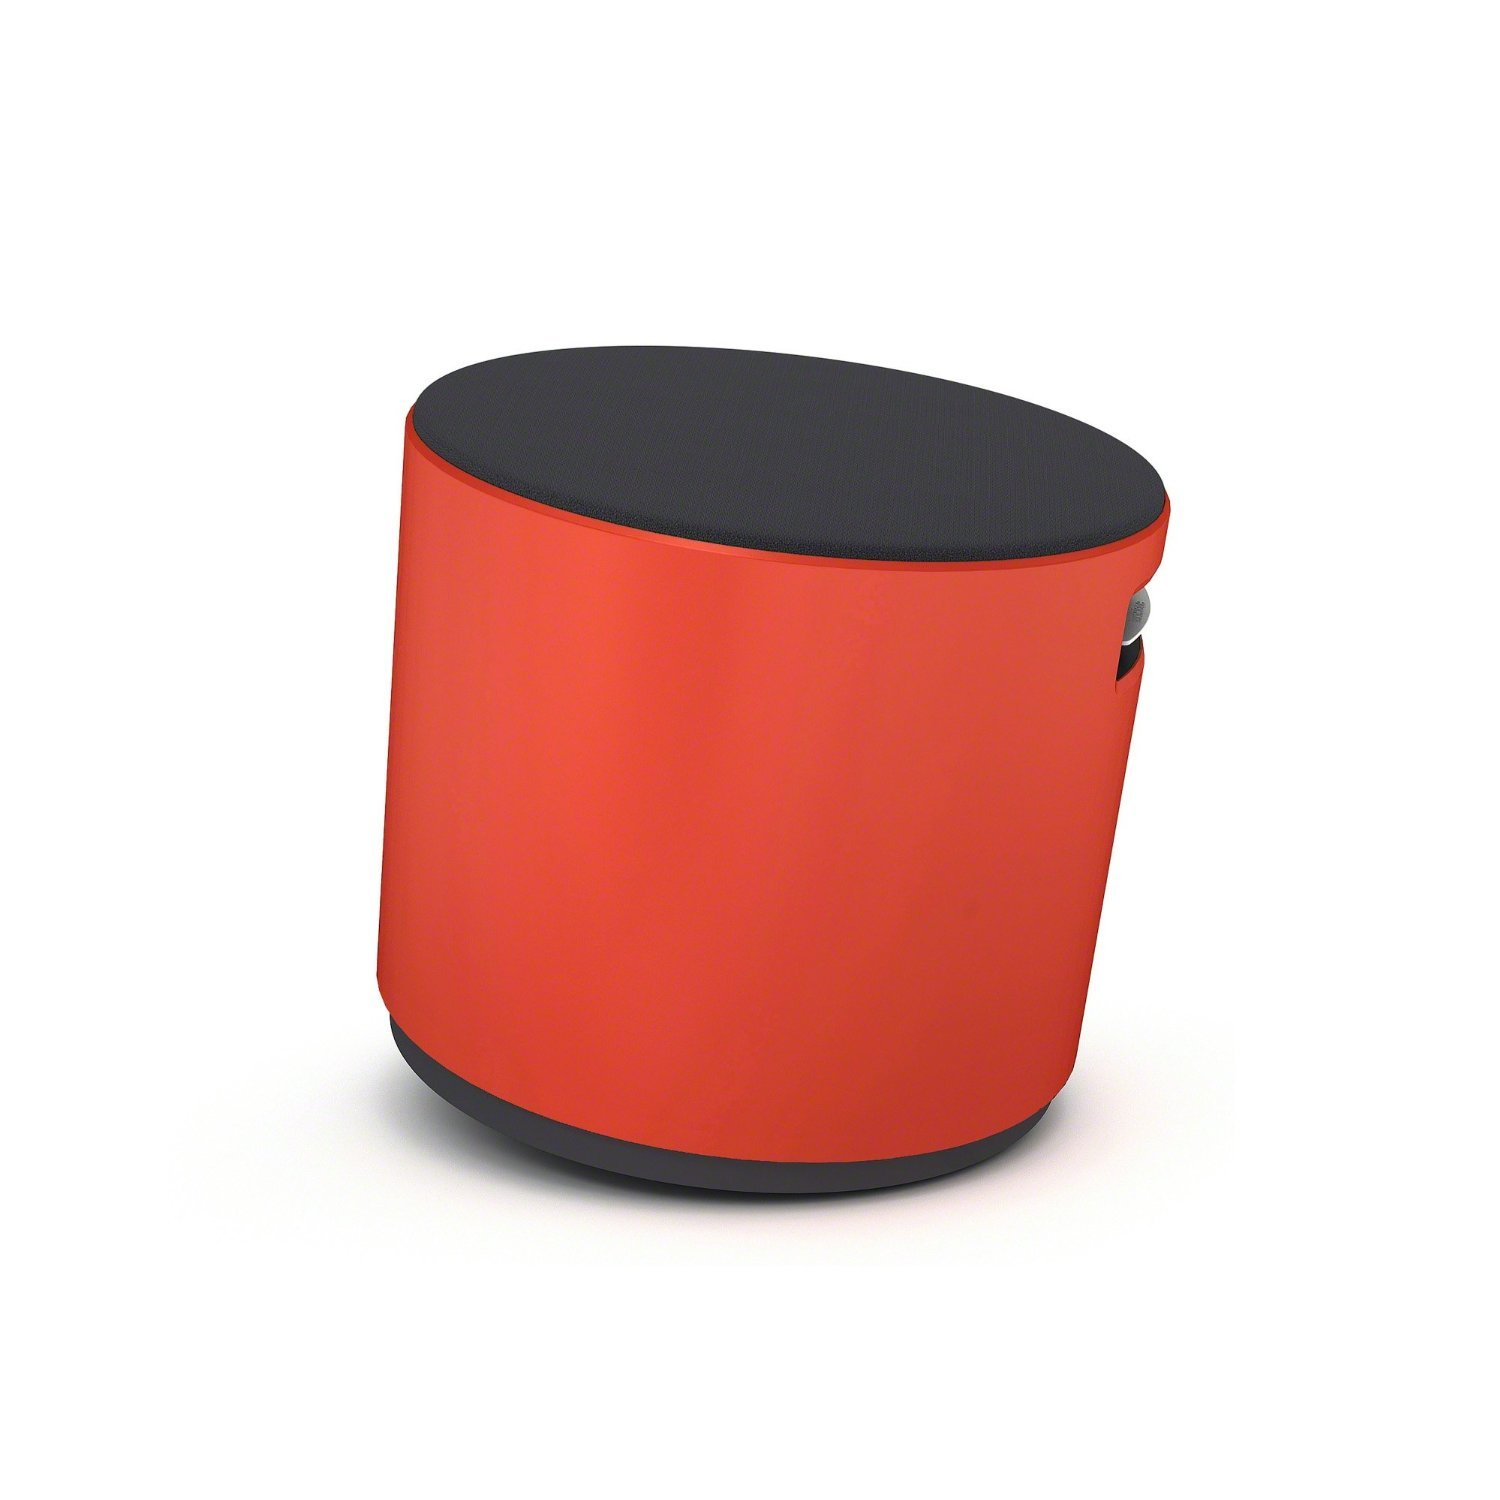 Amazon.com: Turnstone Buoy Stool: Chile Base   Tornado Buzz2 Upholstery:  Kitchen U0026 Dining